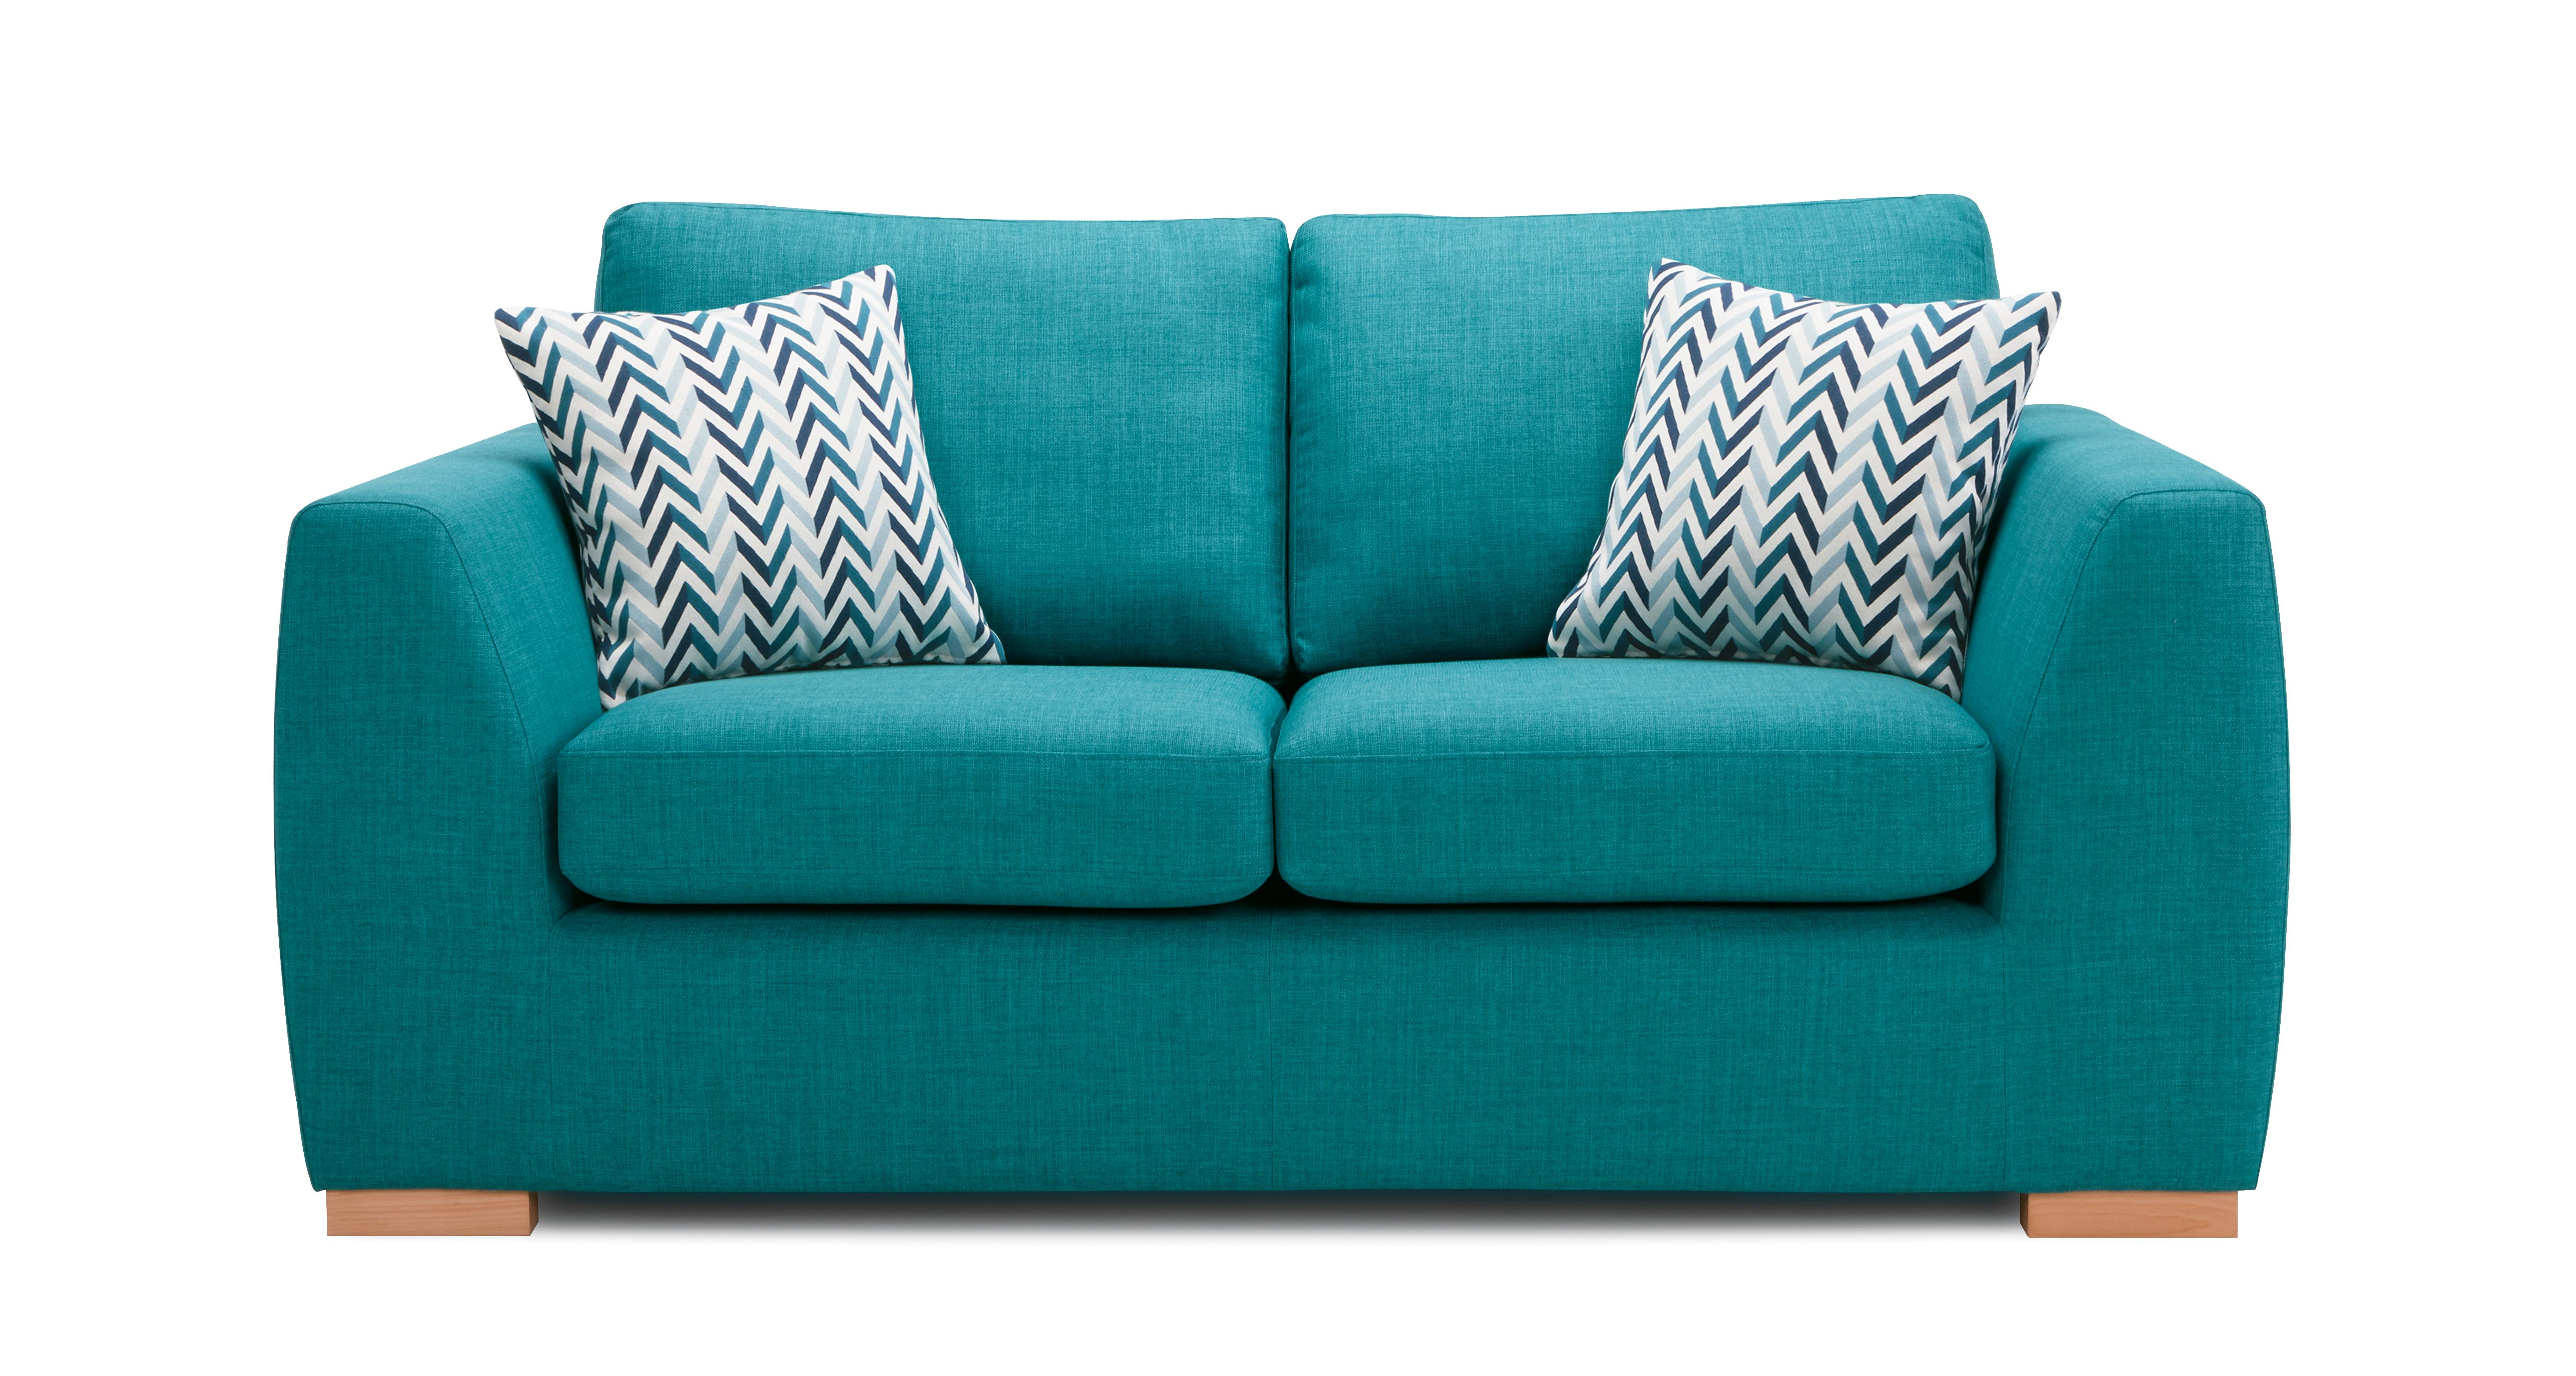 Hex Small 2 Seater Sofa Revive | DFS